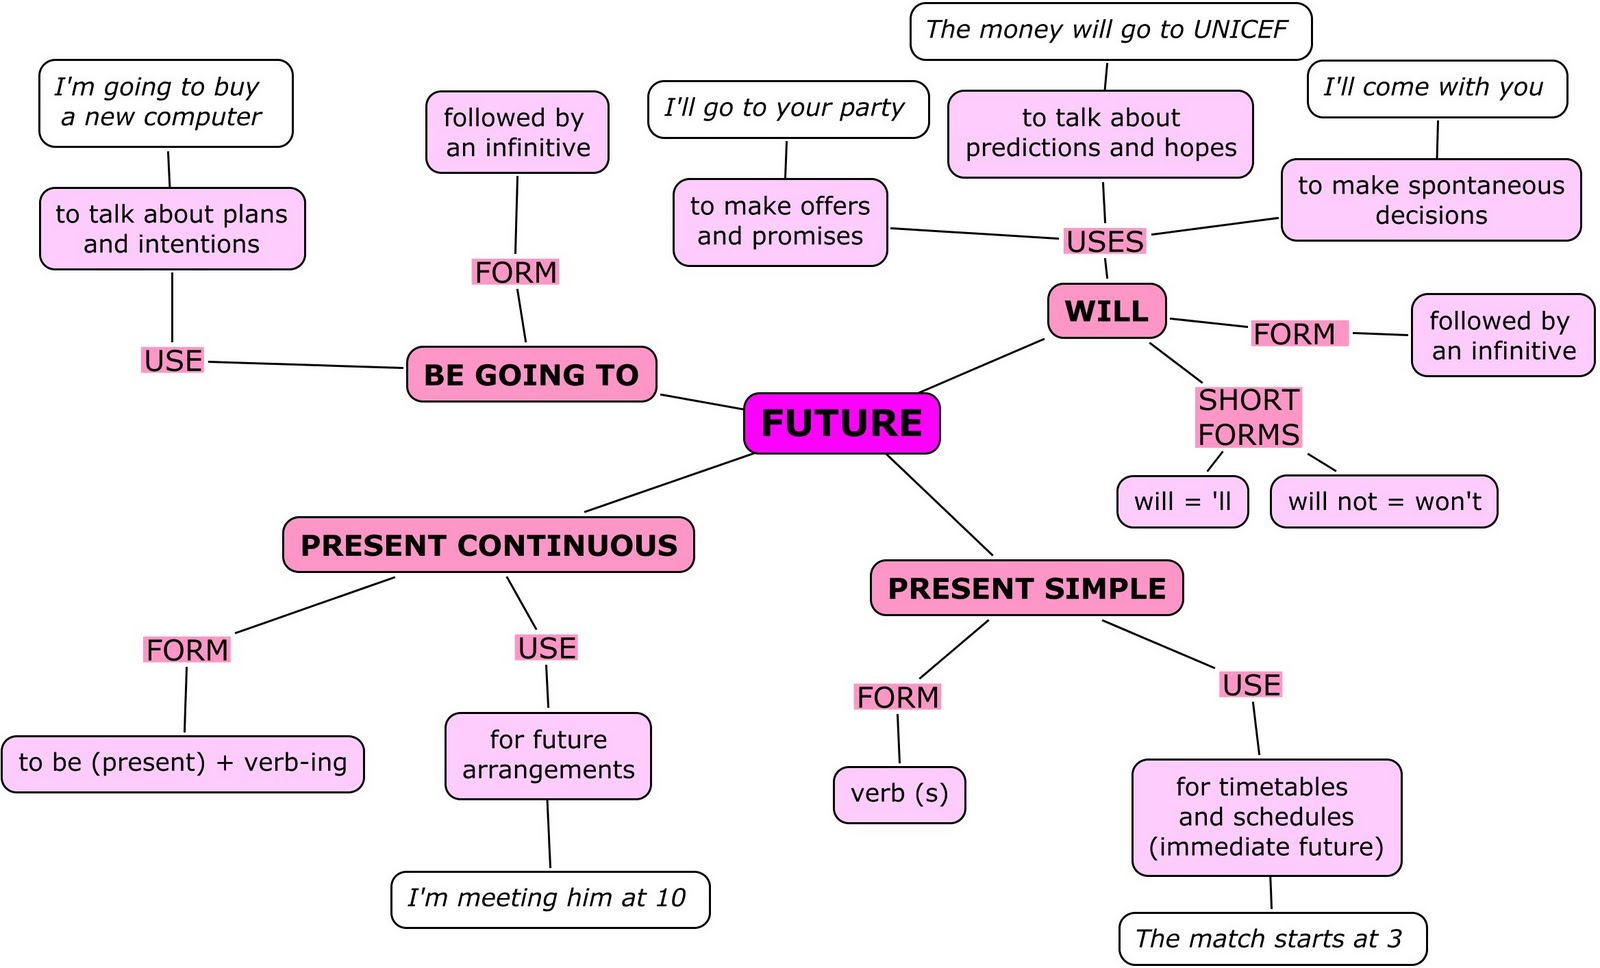 Soraya Moreno's Blog: FUTURE FORMS: GOING TO, PRESENT CONTINUOUS, WILL